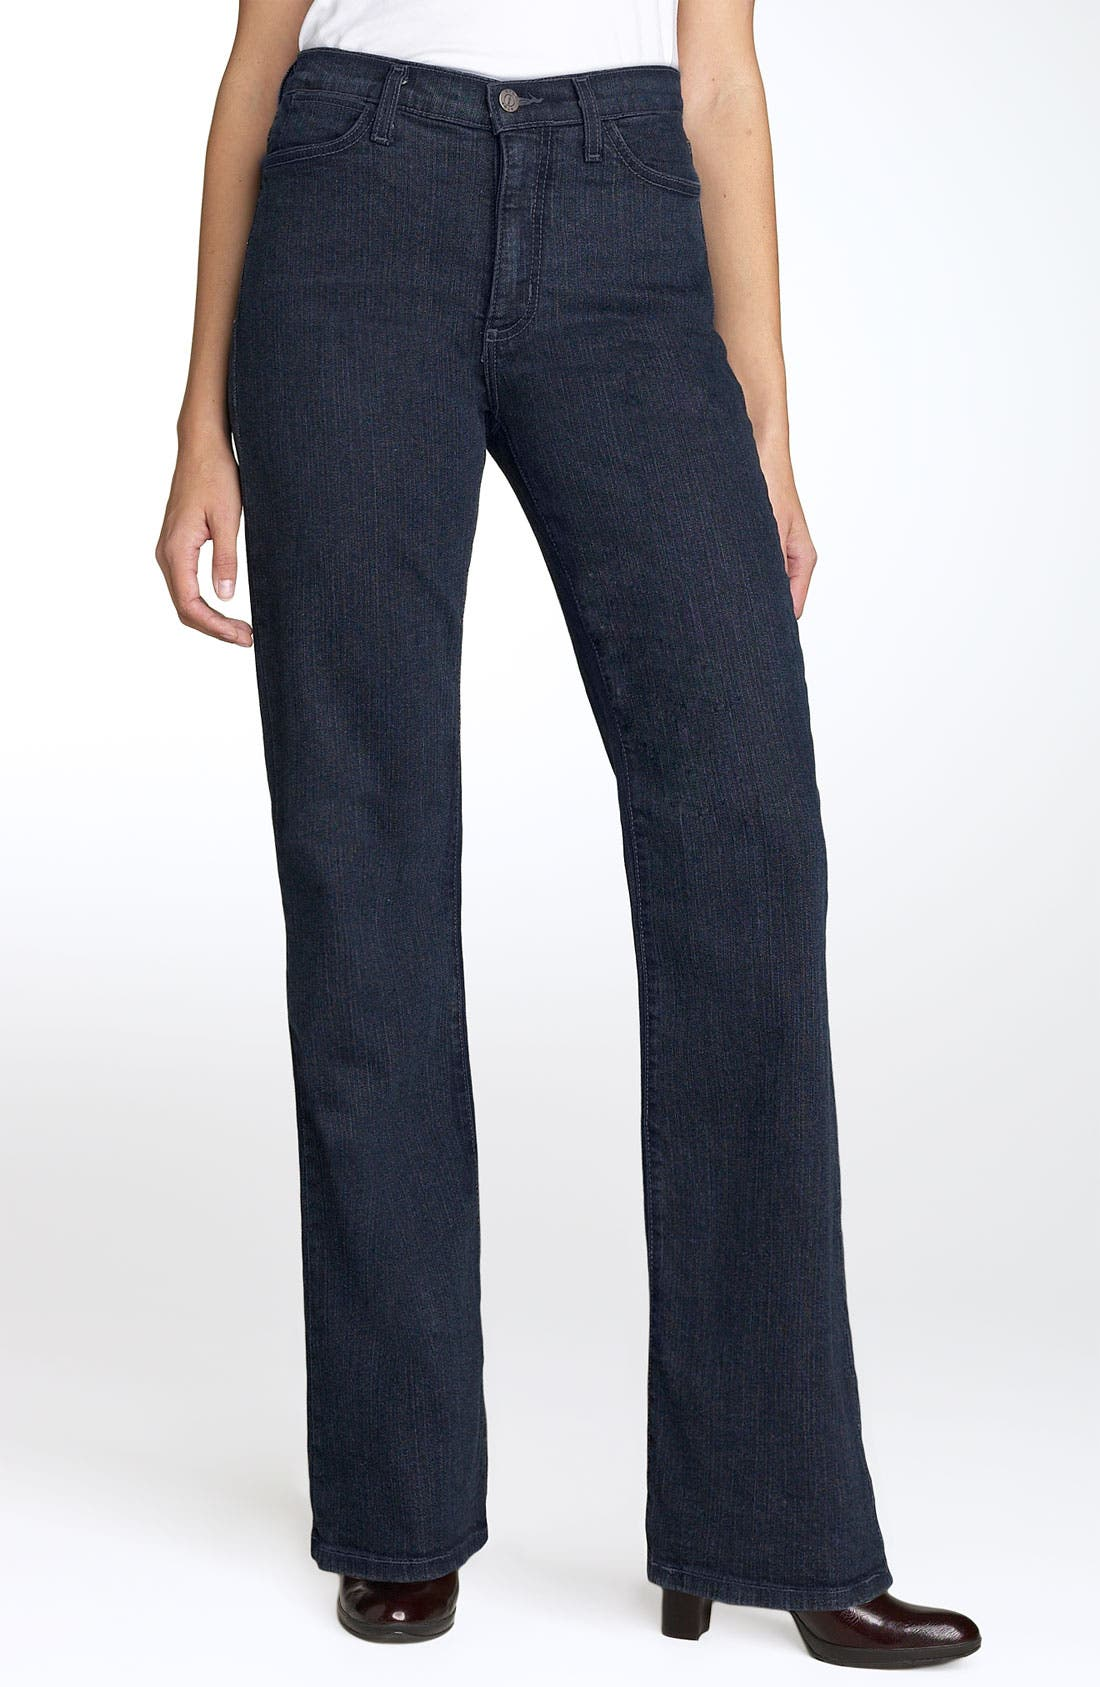 Main Image - NYDJ 'Marilyn' Stretch Straight Leg Jeans (Blue Black) (Regular & Petite)